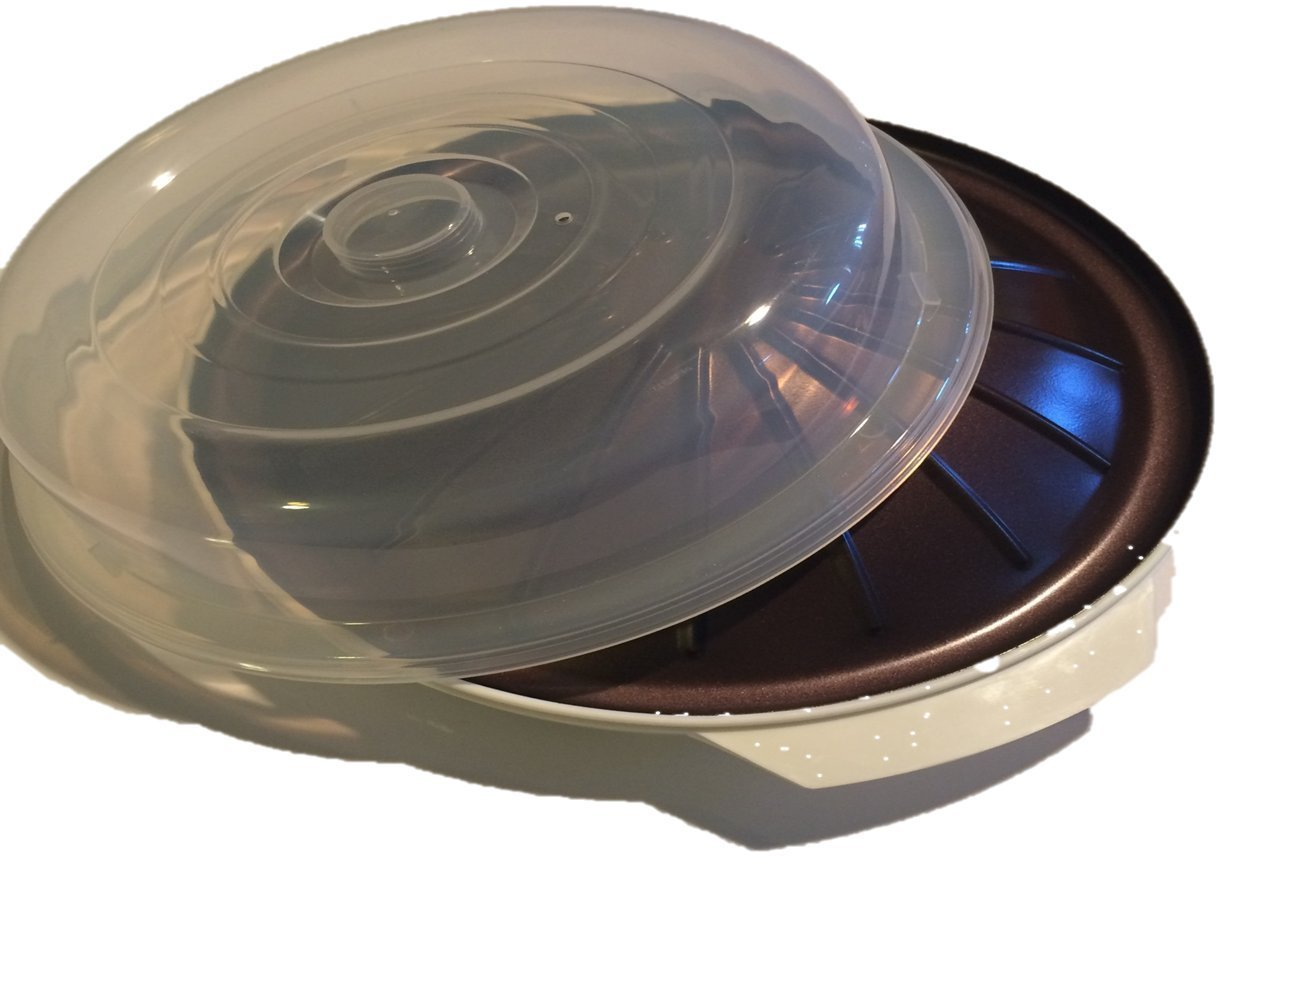 Microwave Roasting Plate, Kitchen Accessories, Appliances, Cooks Meats & Vegetables